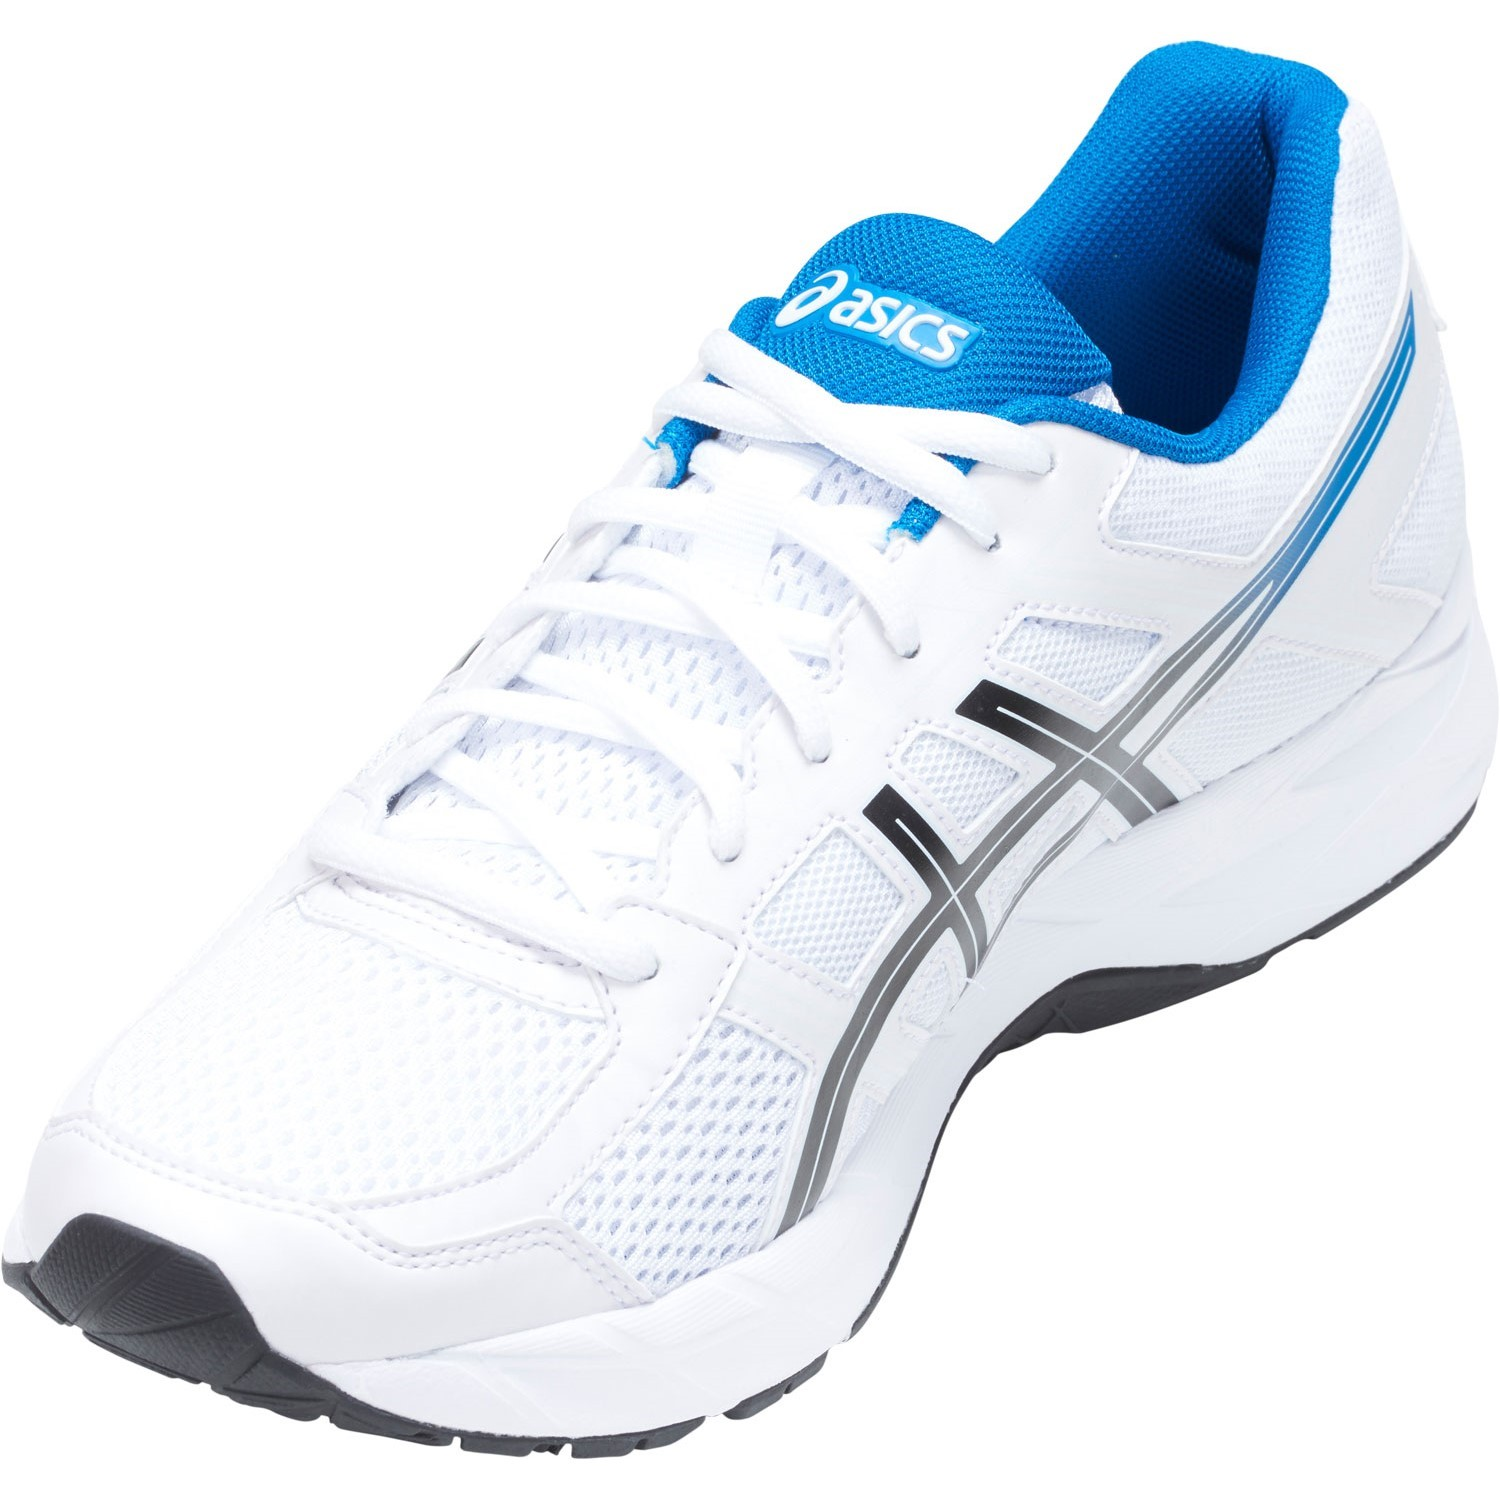 7961e97d9ec9 Asics Gel Contend 4 - Mens Running Shoes - White Race Blue